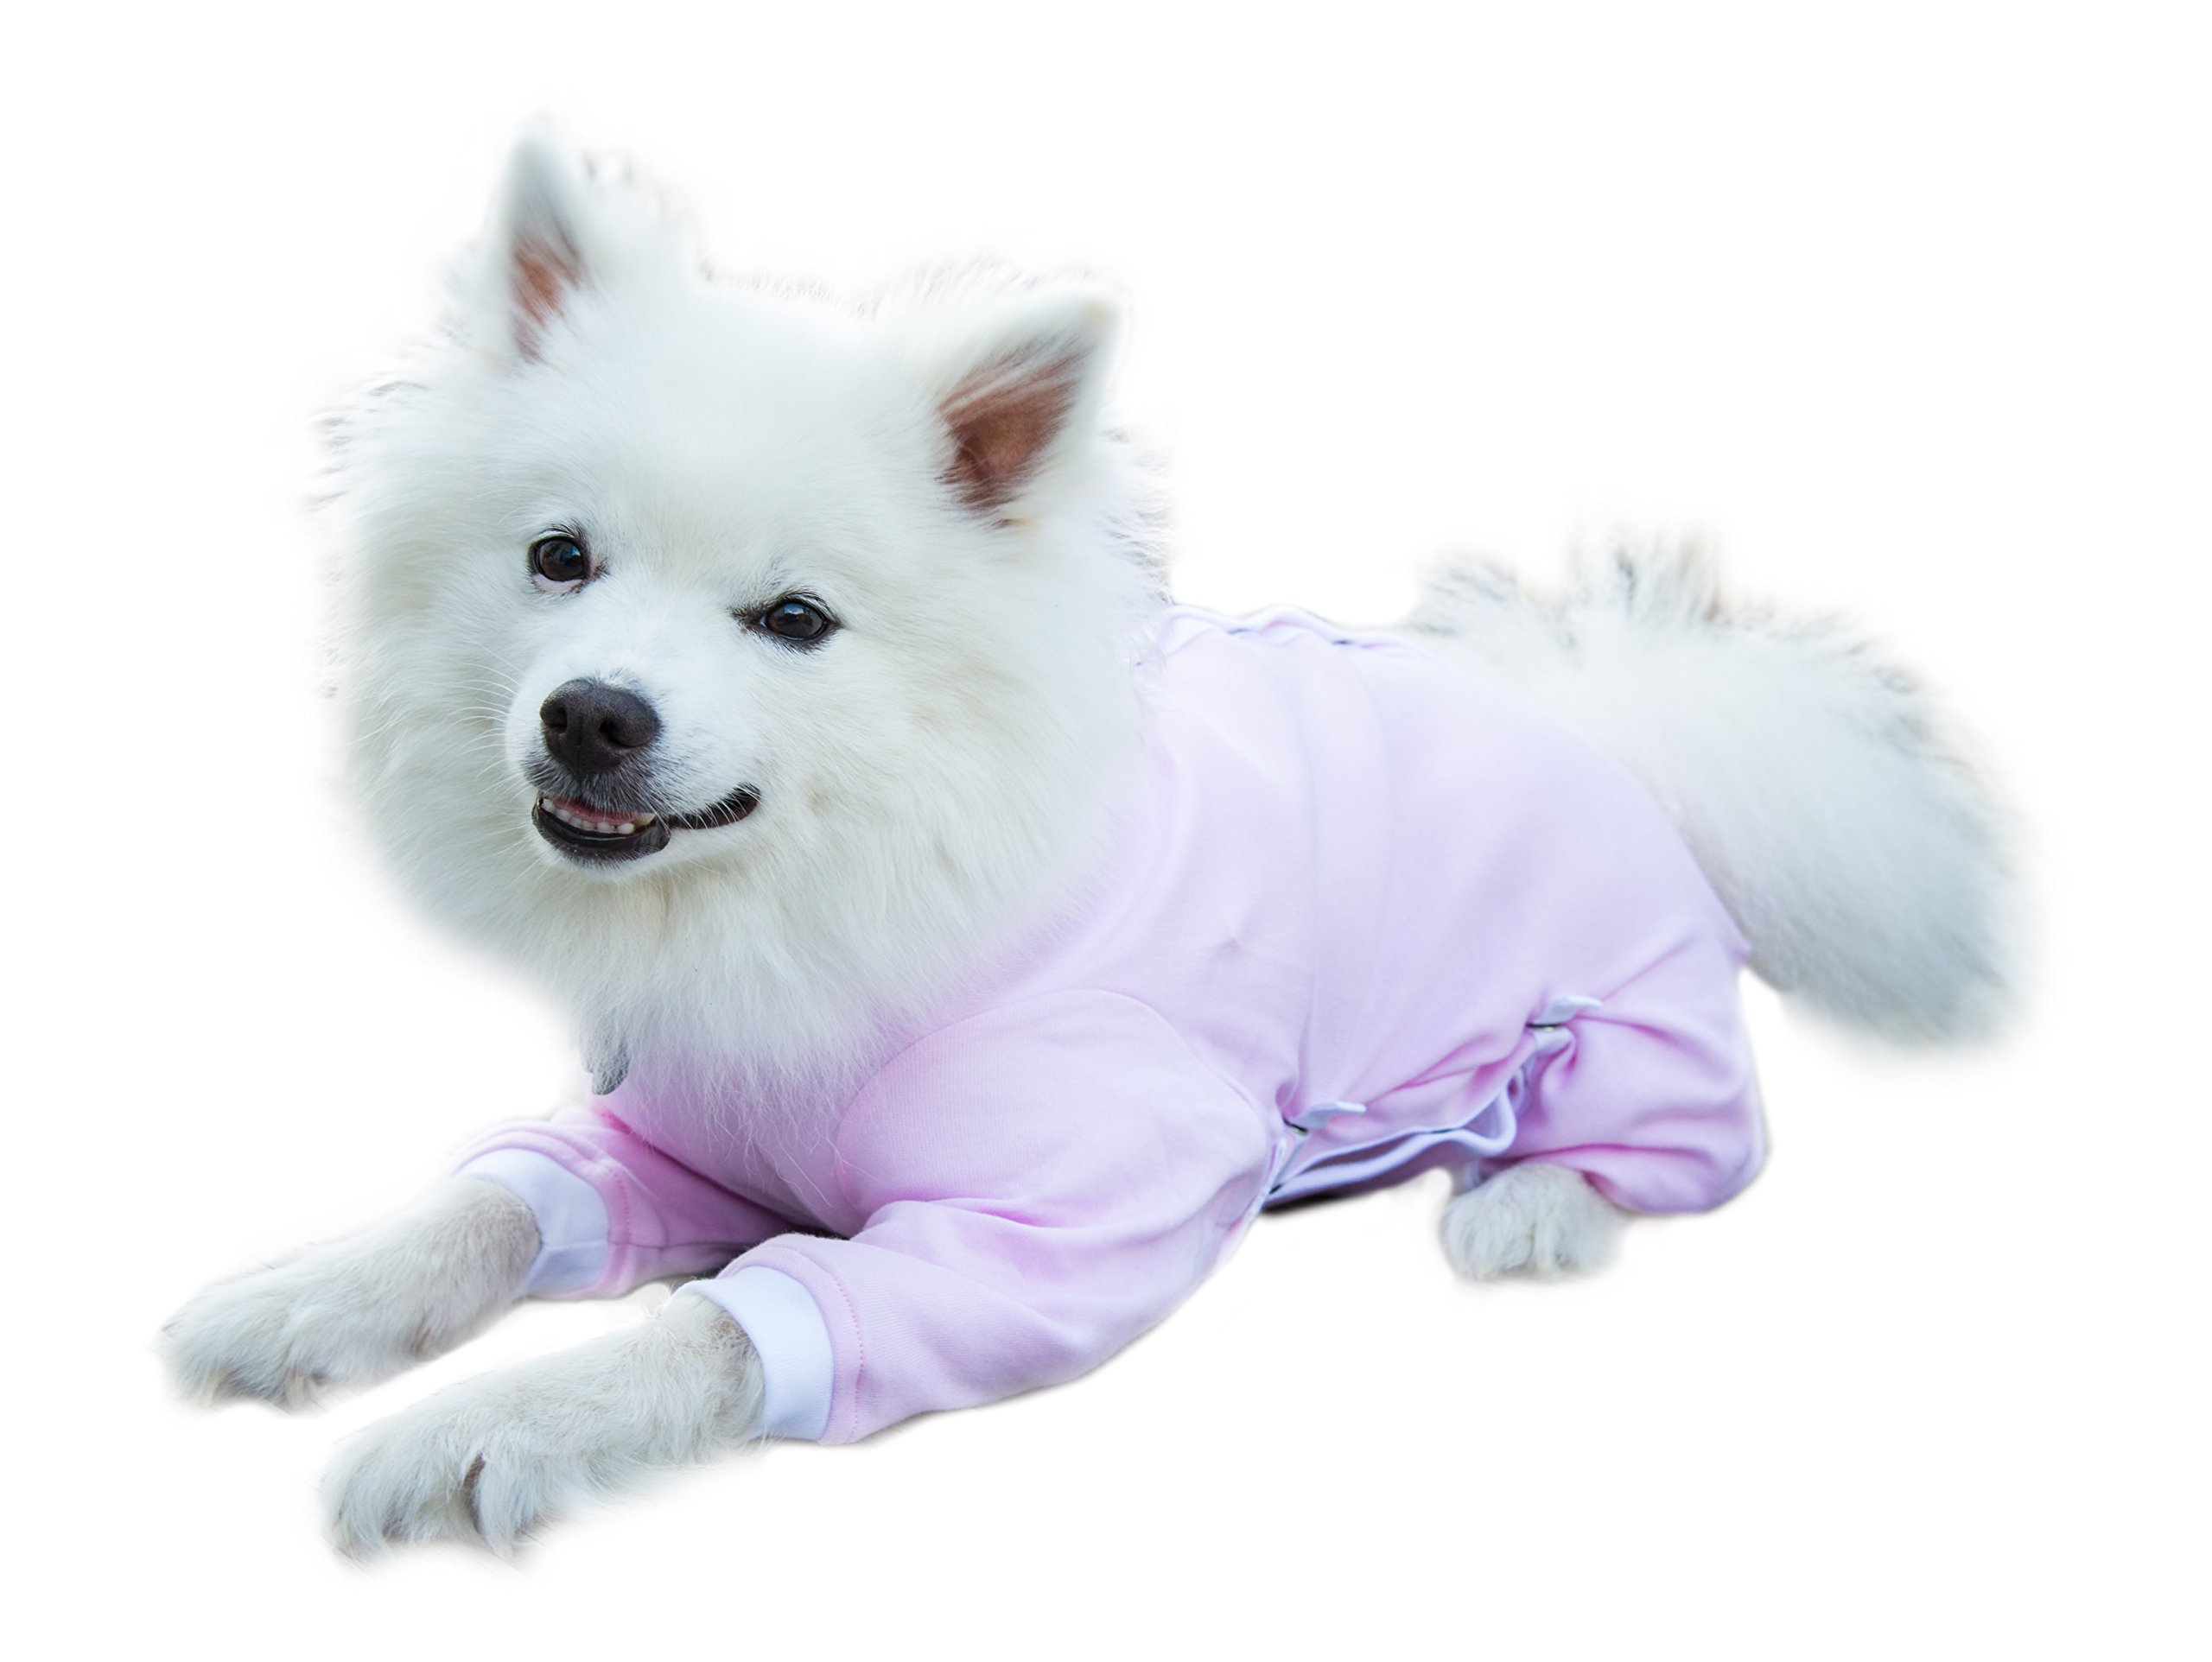 Cover Me by Tui Adjustable Fit Step-into with Short Sleeve for Pets, XX-Large, Pink by Cover Me by Tui  Adjustable Fit